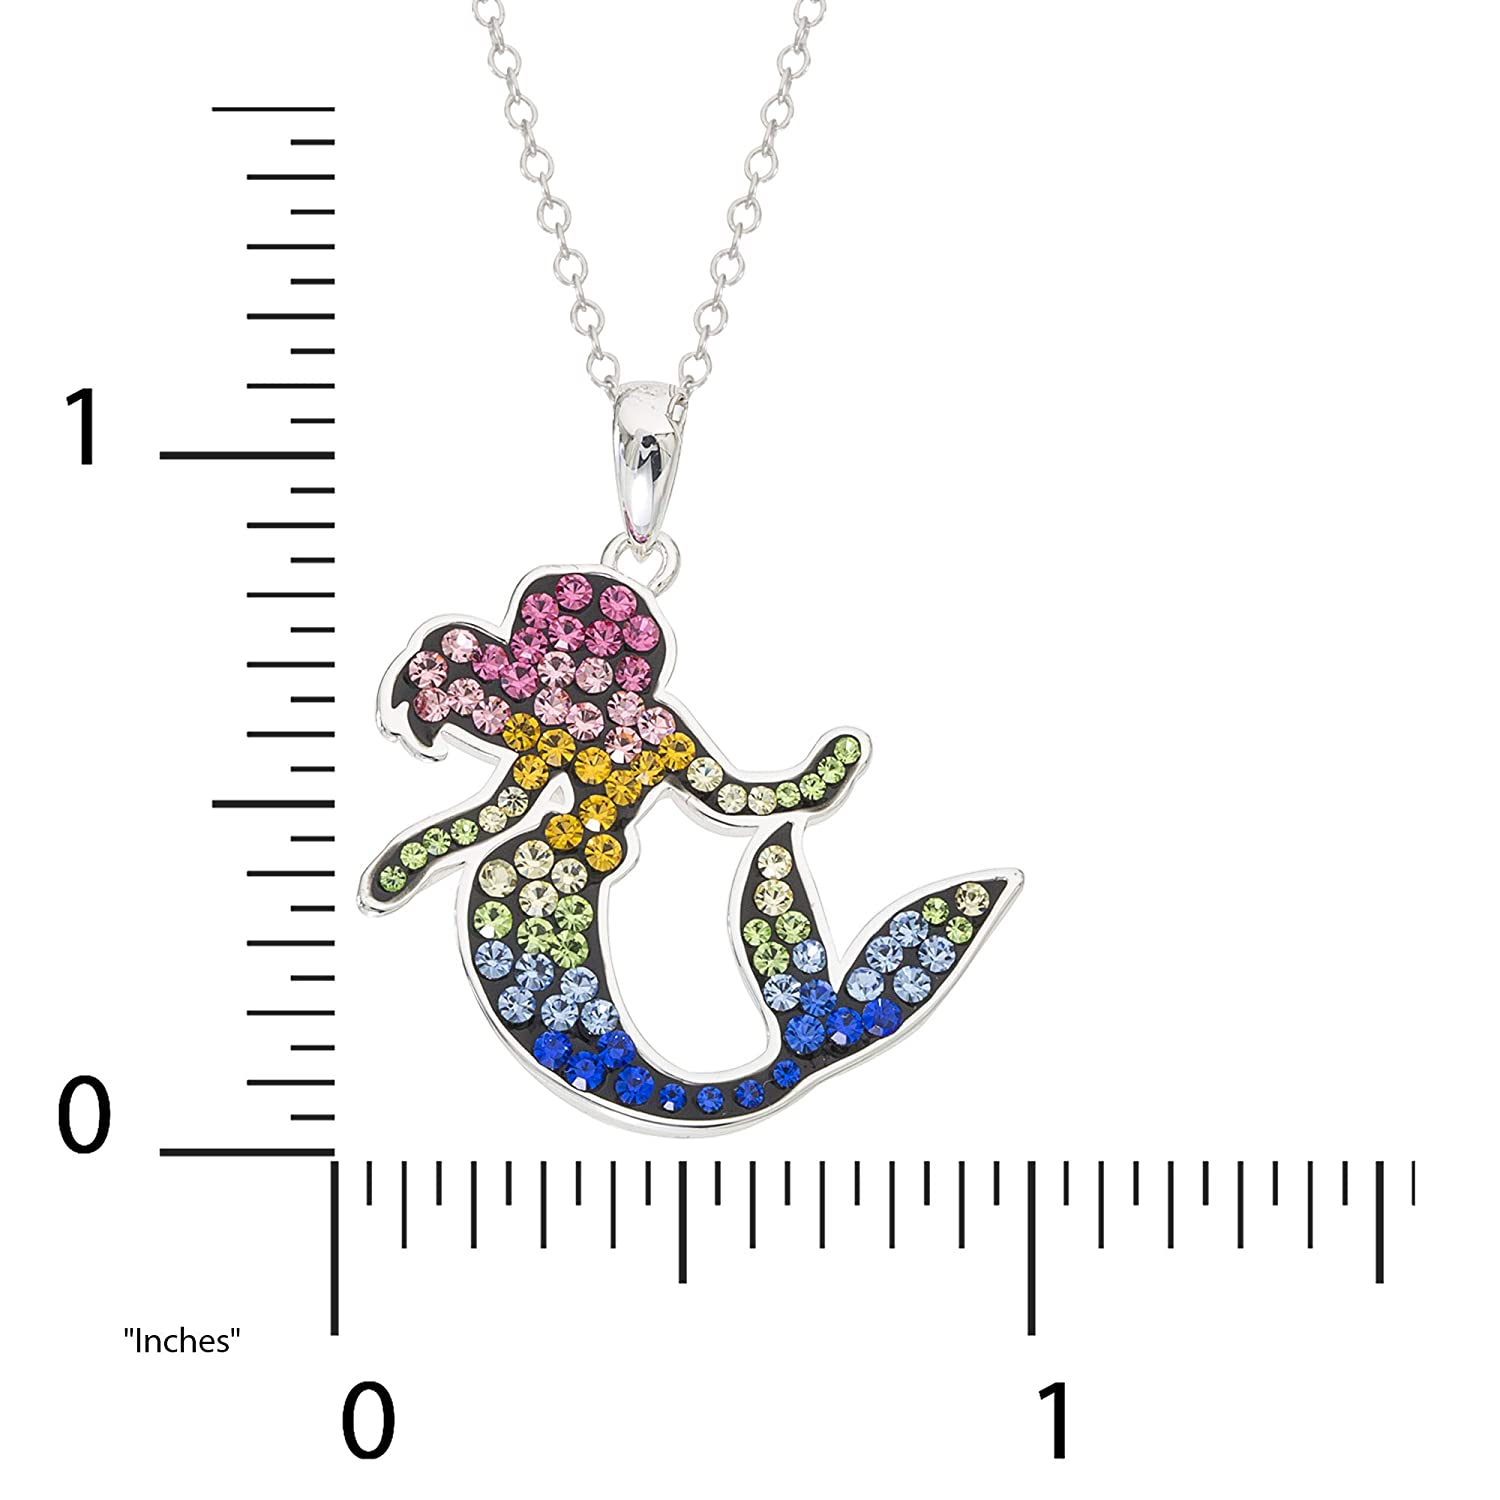 Disney Little Mermaid Jewelry for Women and Girls, Ariel Silver-Plated Brass Rainbow Swarovski Crystal Necklace with Pendant, 18 Chain